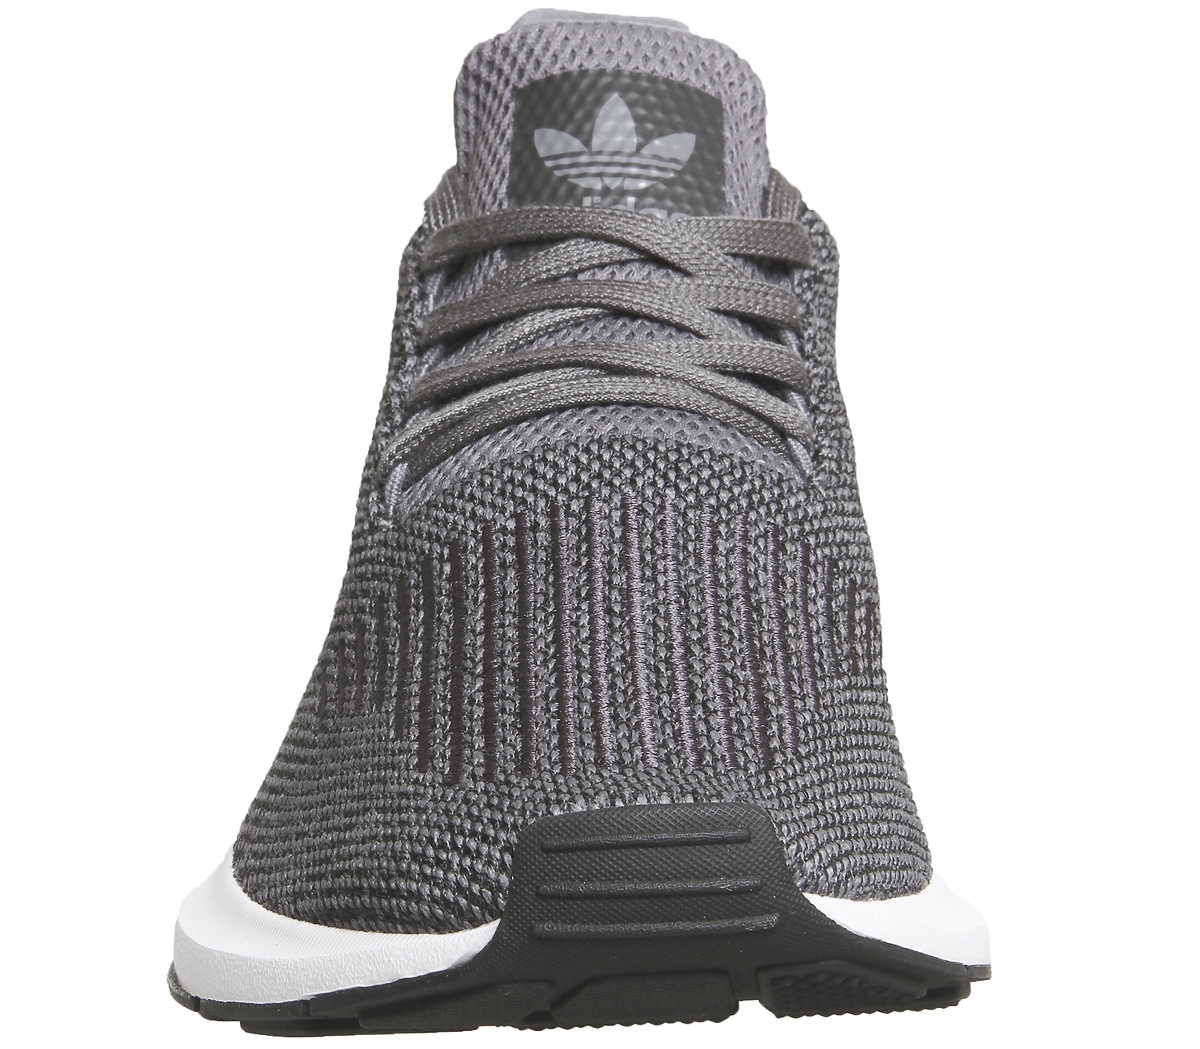 Sentinel Thumbnail 1. Sentinel Adidas Swift Run Trainers GREY FOUR BLACK ... f856567ef